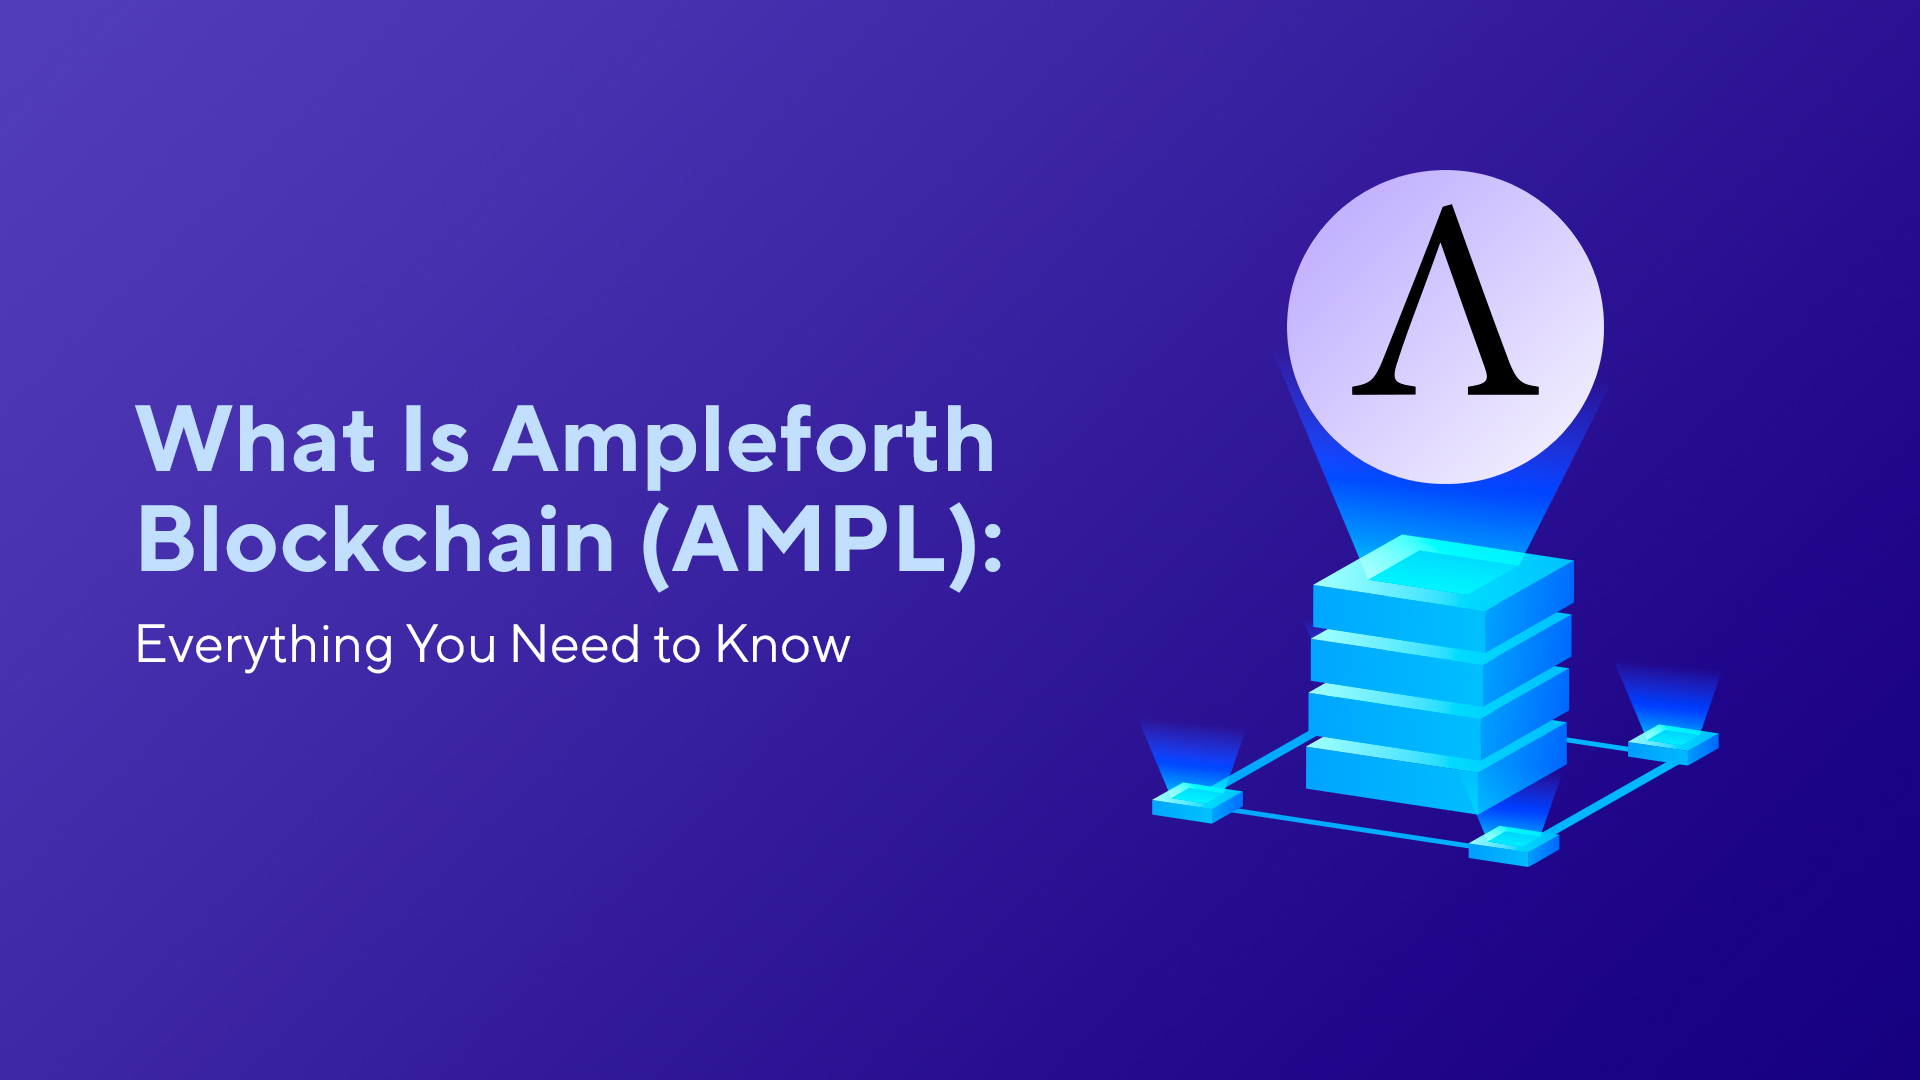 What Is Ampleforth Blockchain (AMPL): Everything You Need to Know